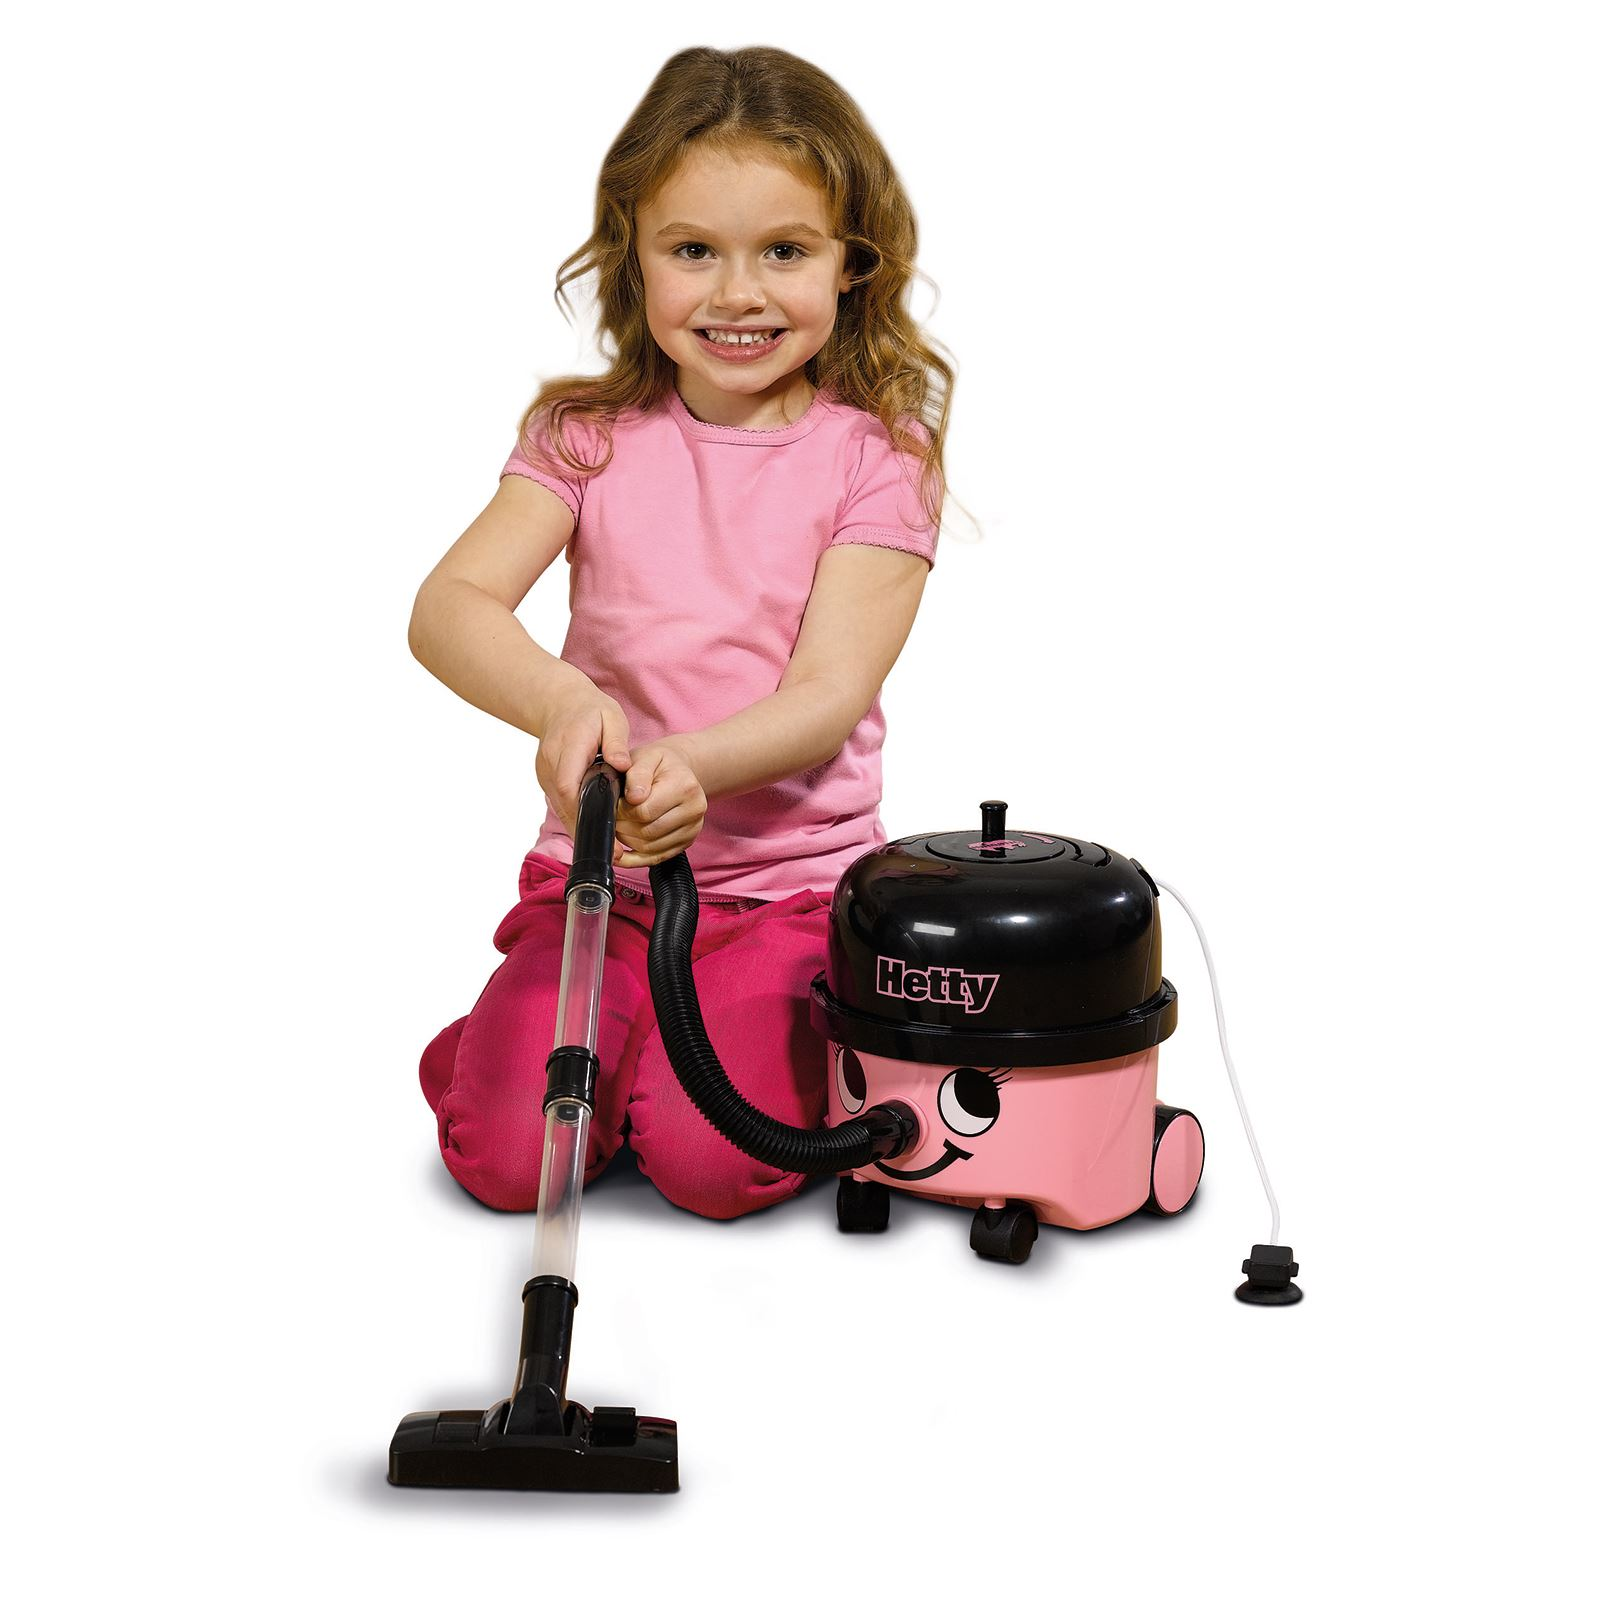 Indexbild 27 - KIDS VACUUM CLEANERS - LITTLE HENRY HETTY DYSON - KIDS CHILDRENS ROLE PLAY